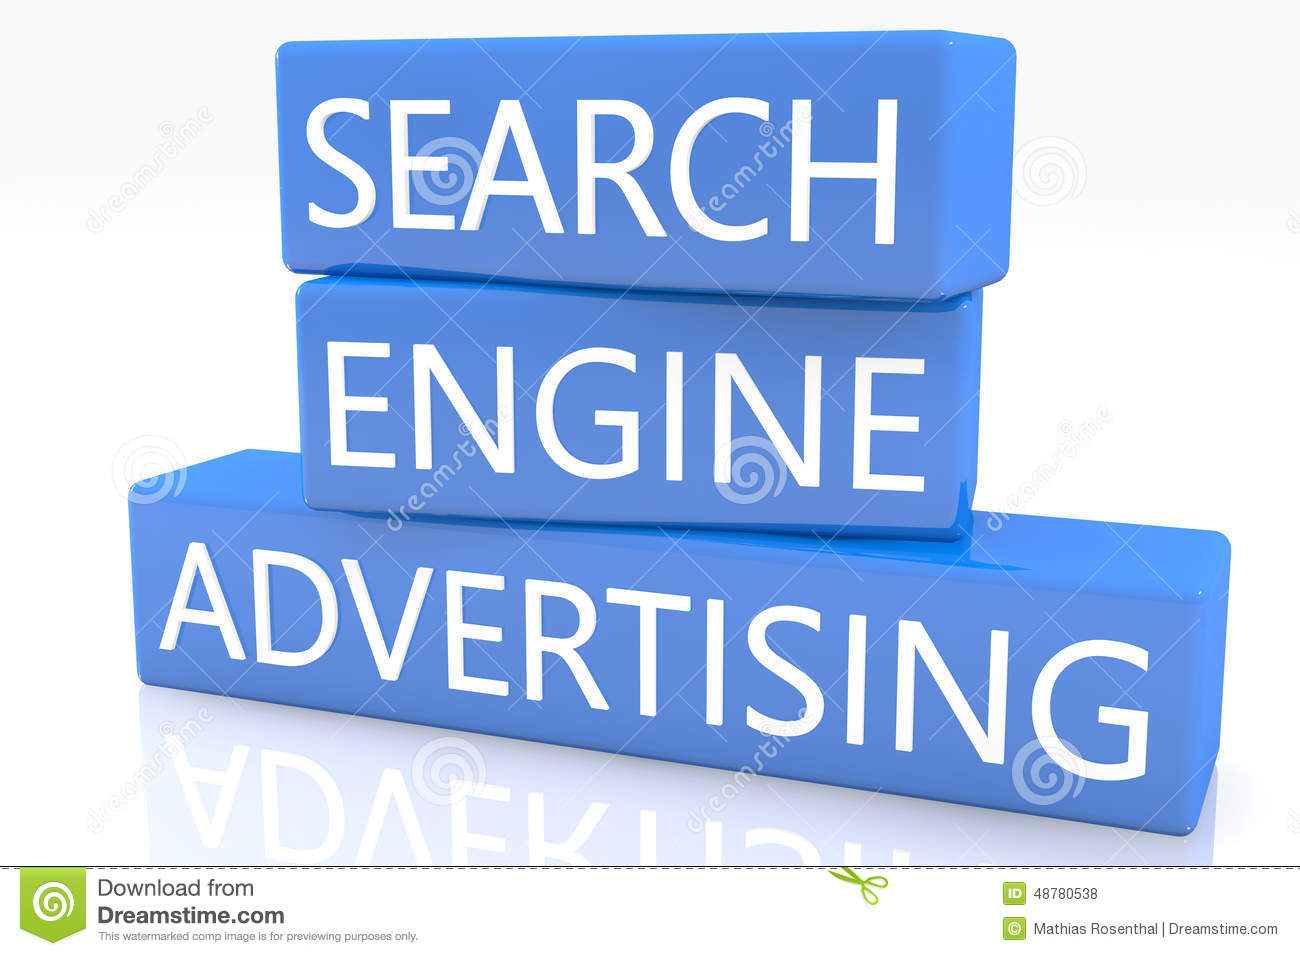 Search Engine Advertising Stock Illustration - Image: 48780538